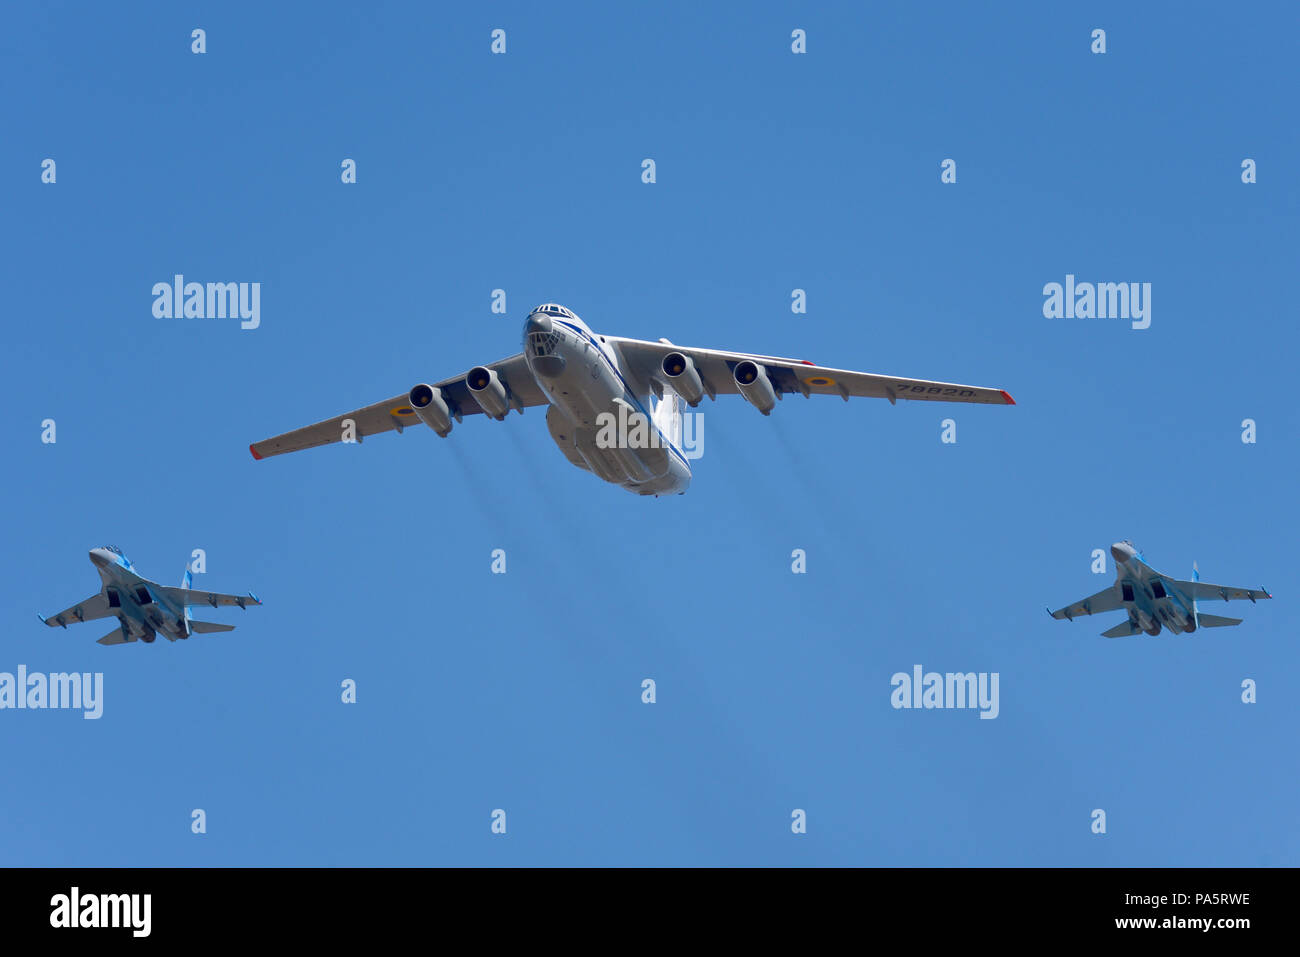 Ukrainian Air Force Ilyushin Il76 Candid and Sukhoi Su27 Flanker fighter jets at the Royal International Air Tattoo RIAT 2018, RAF Fairford, UK. - Stock Image